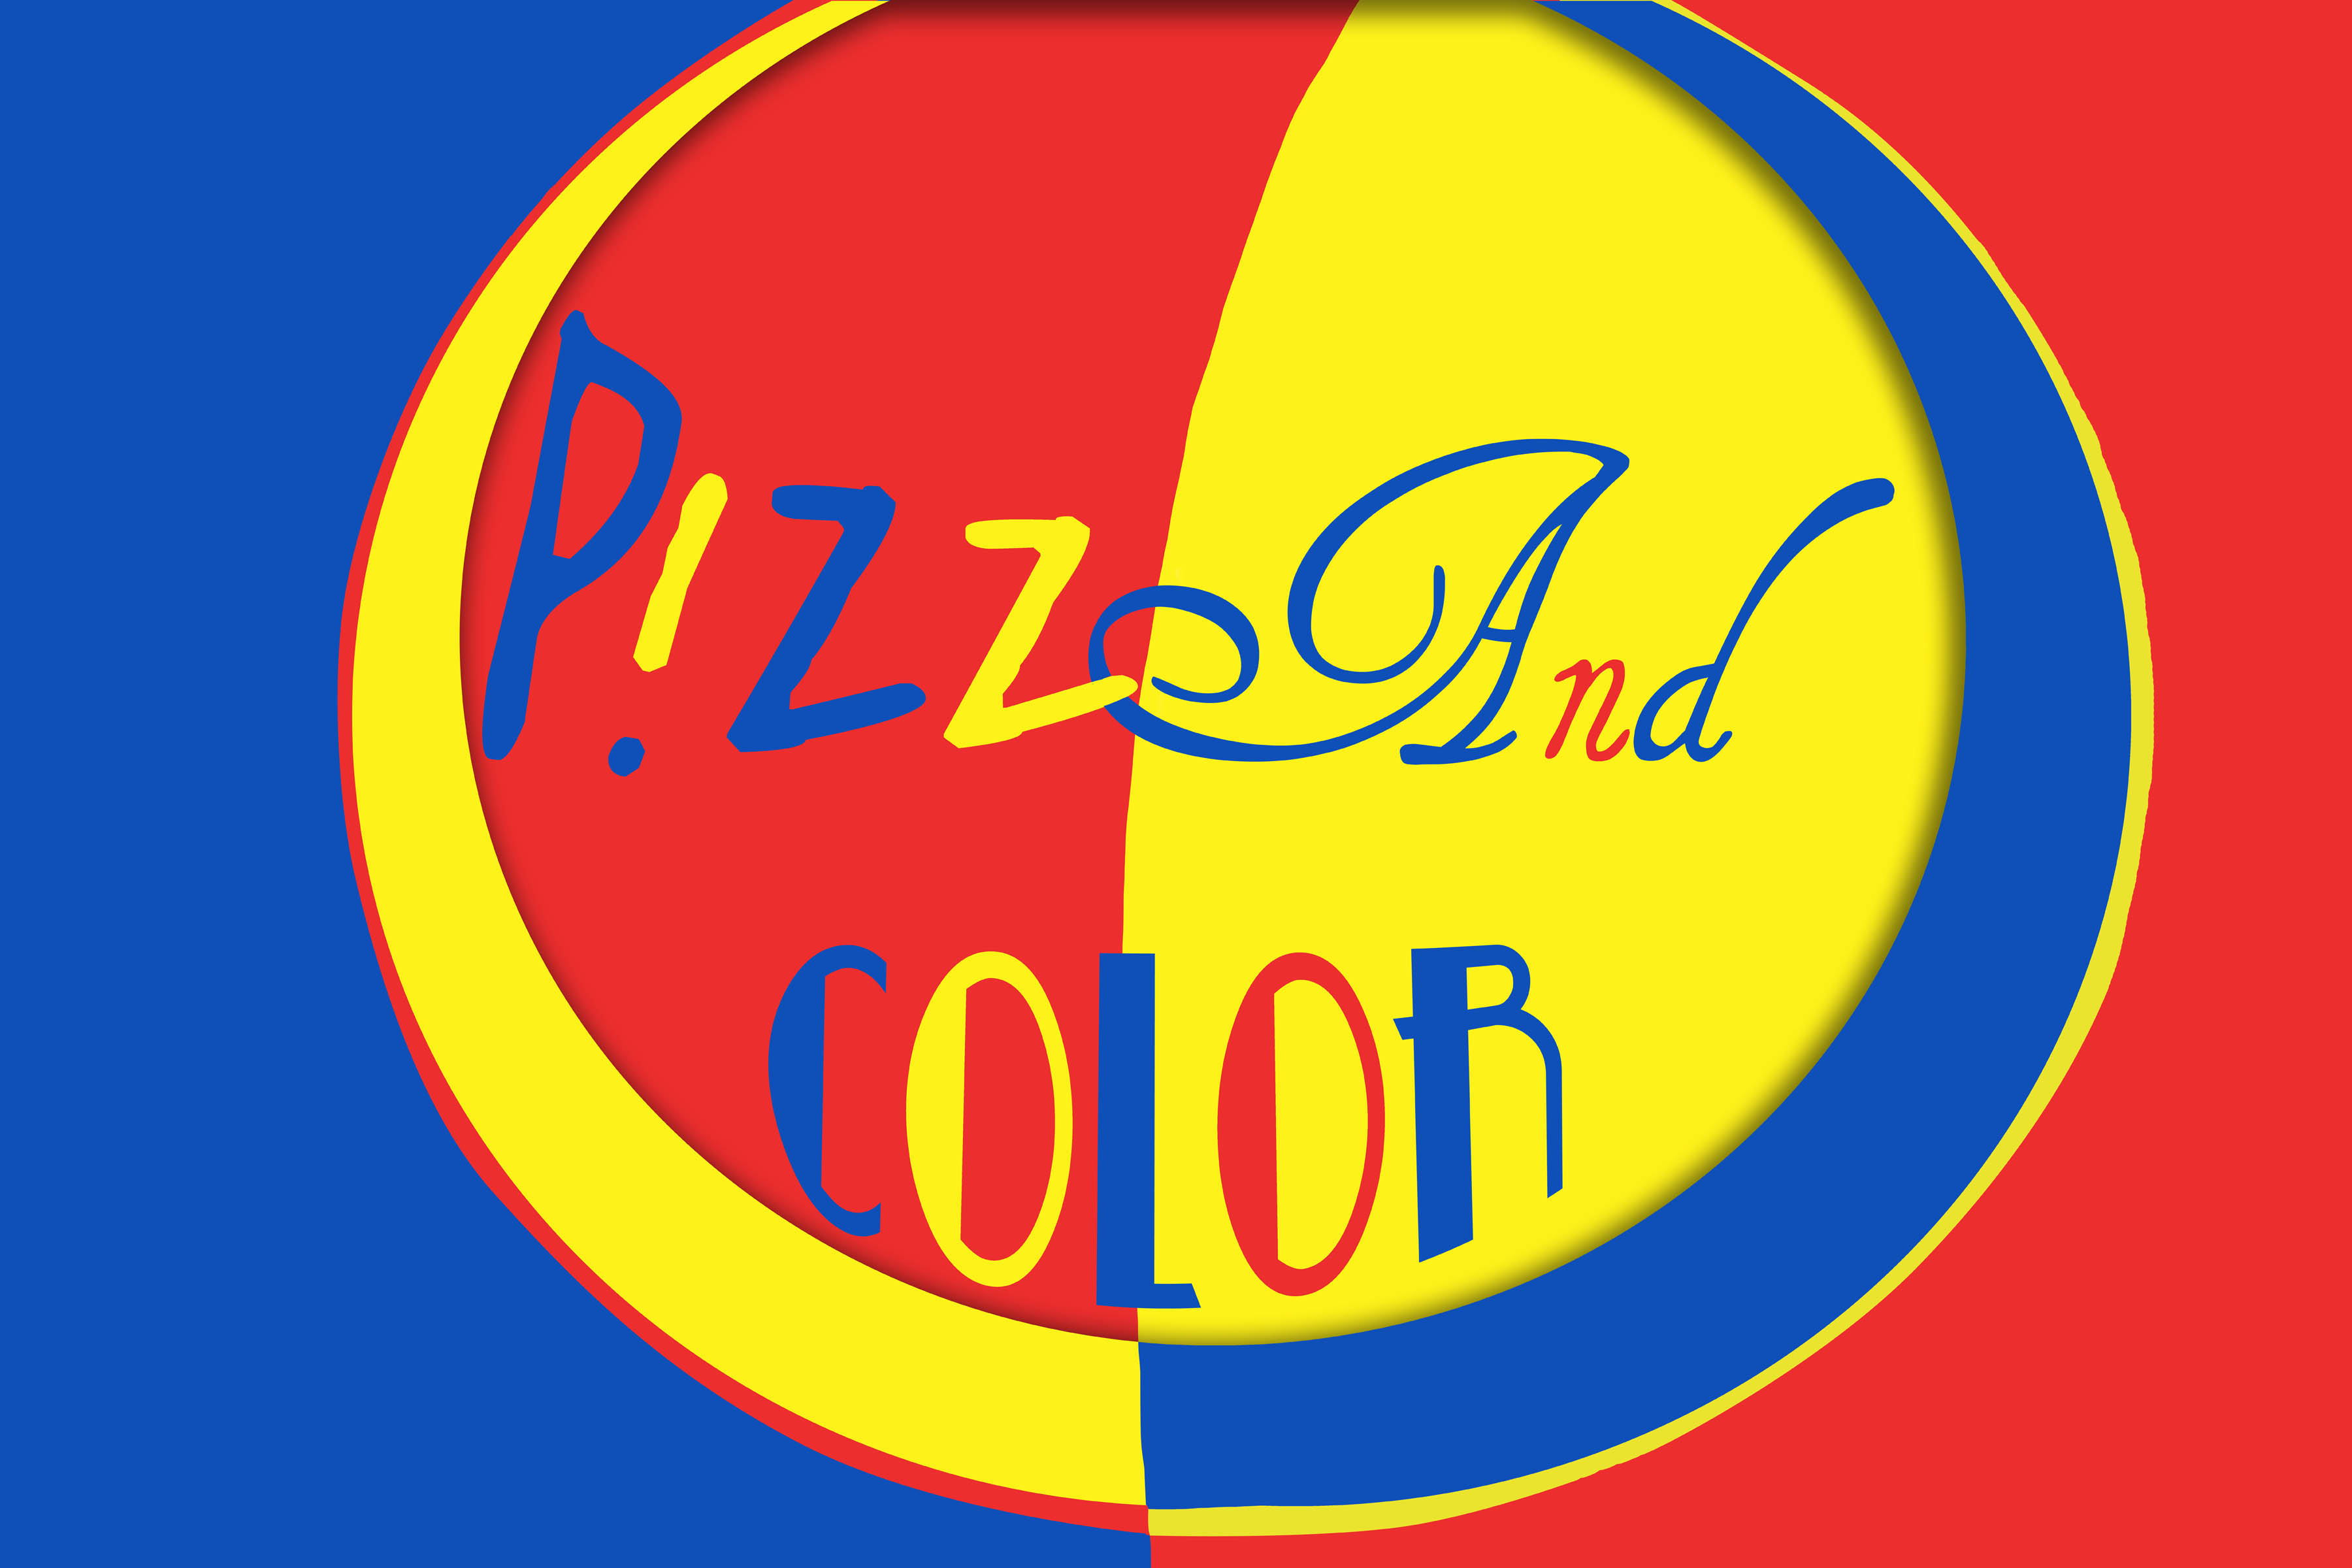 PIZZA AND COLOR j